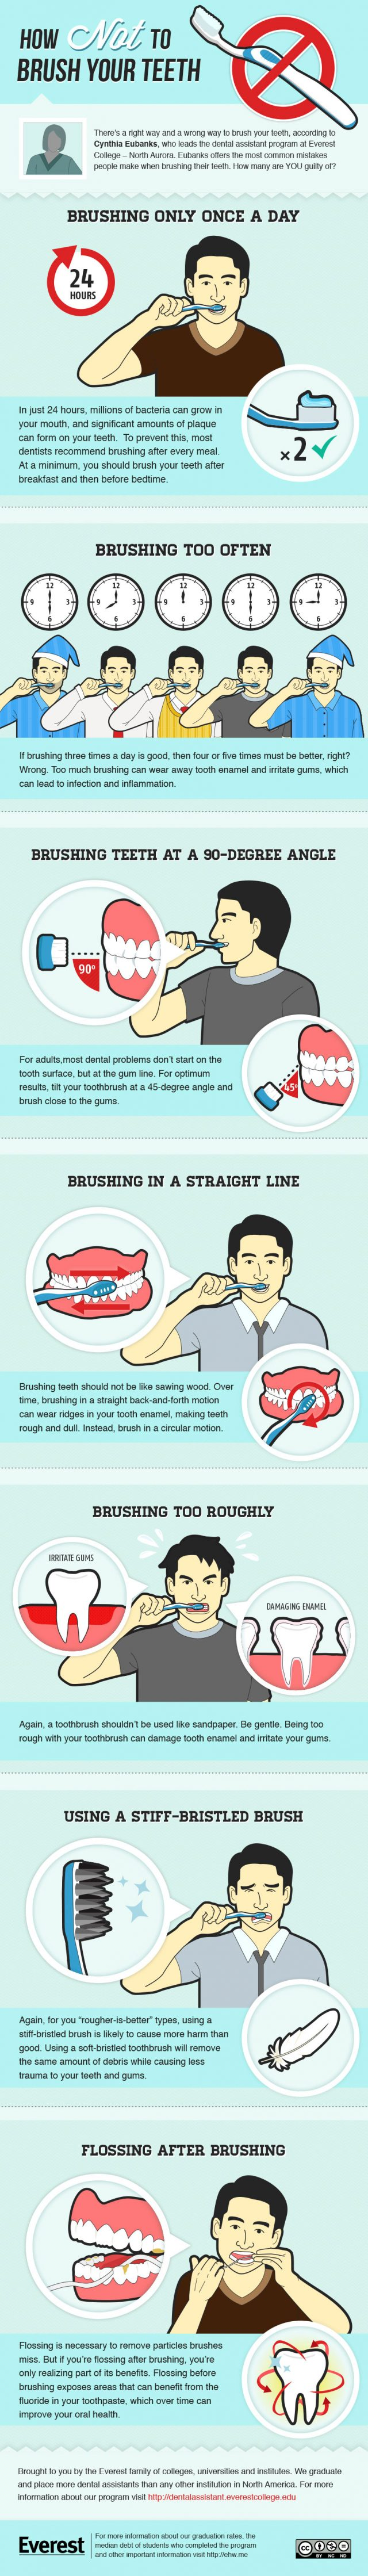 Brushing Teeth: Common Mistakes To Avoid Infographic